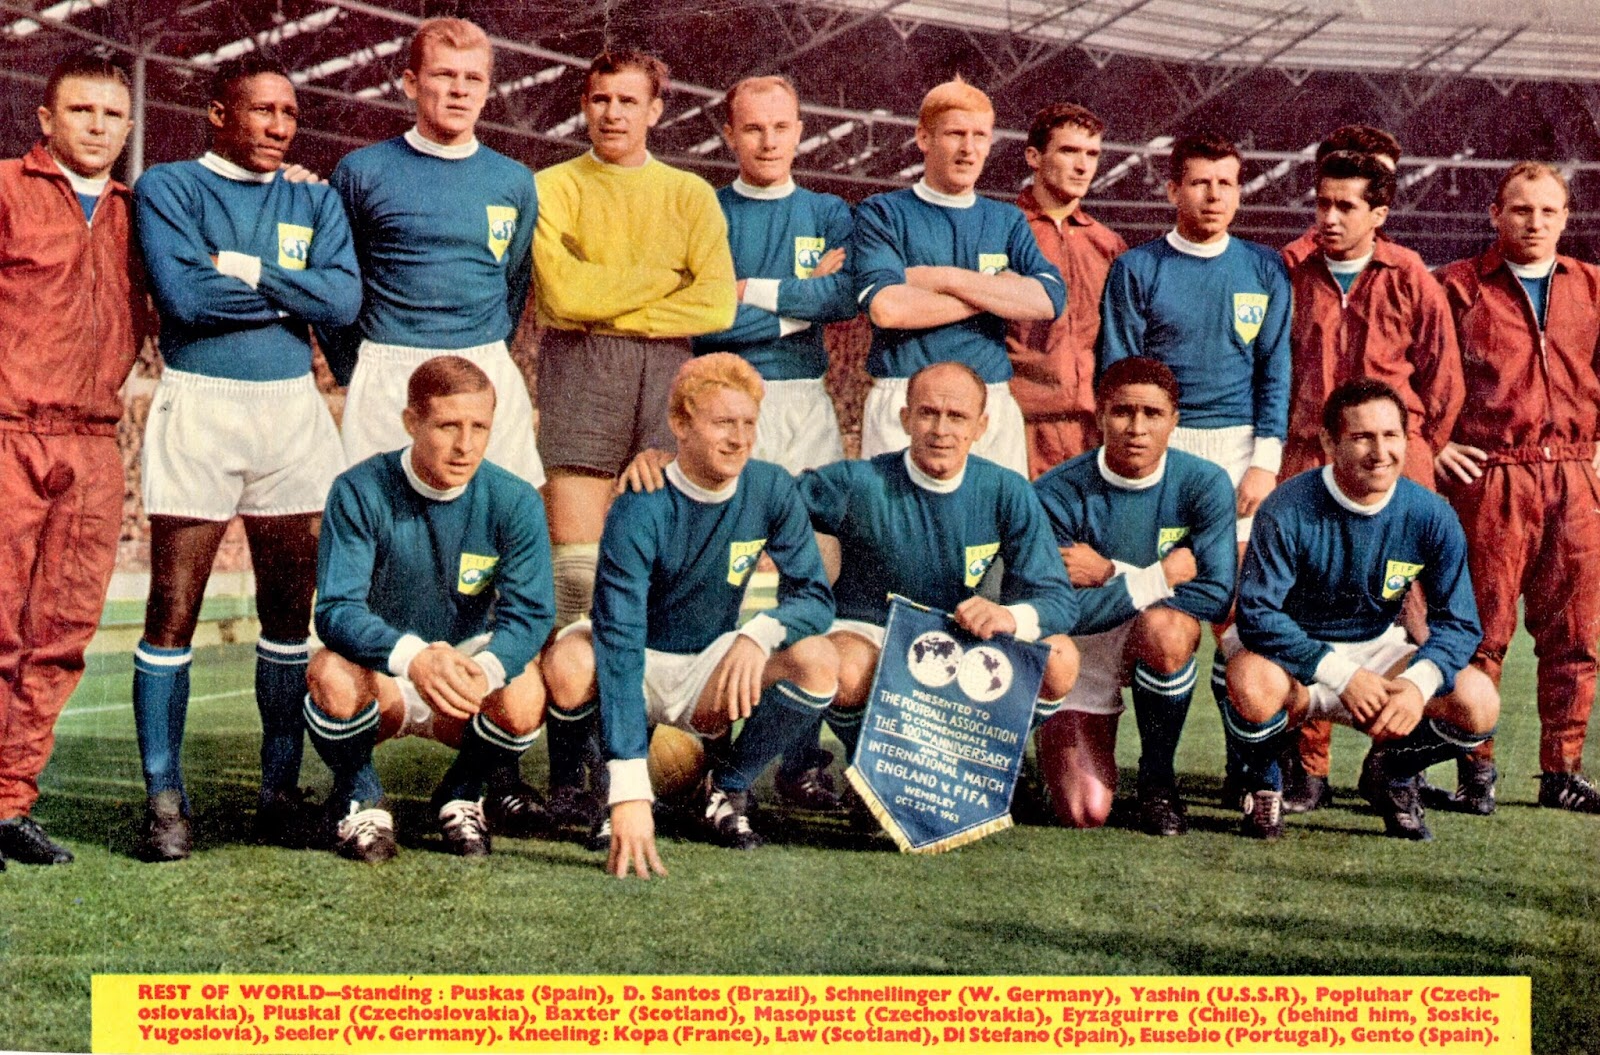 Rest Of World Xi Team Group At Wembley In 1963 Diana Mulher Maravilha Futebol Mulher